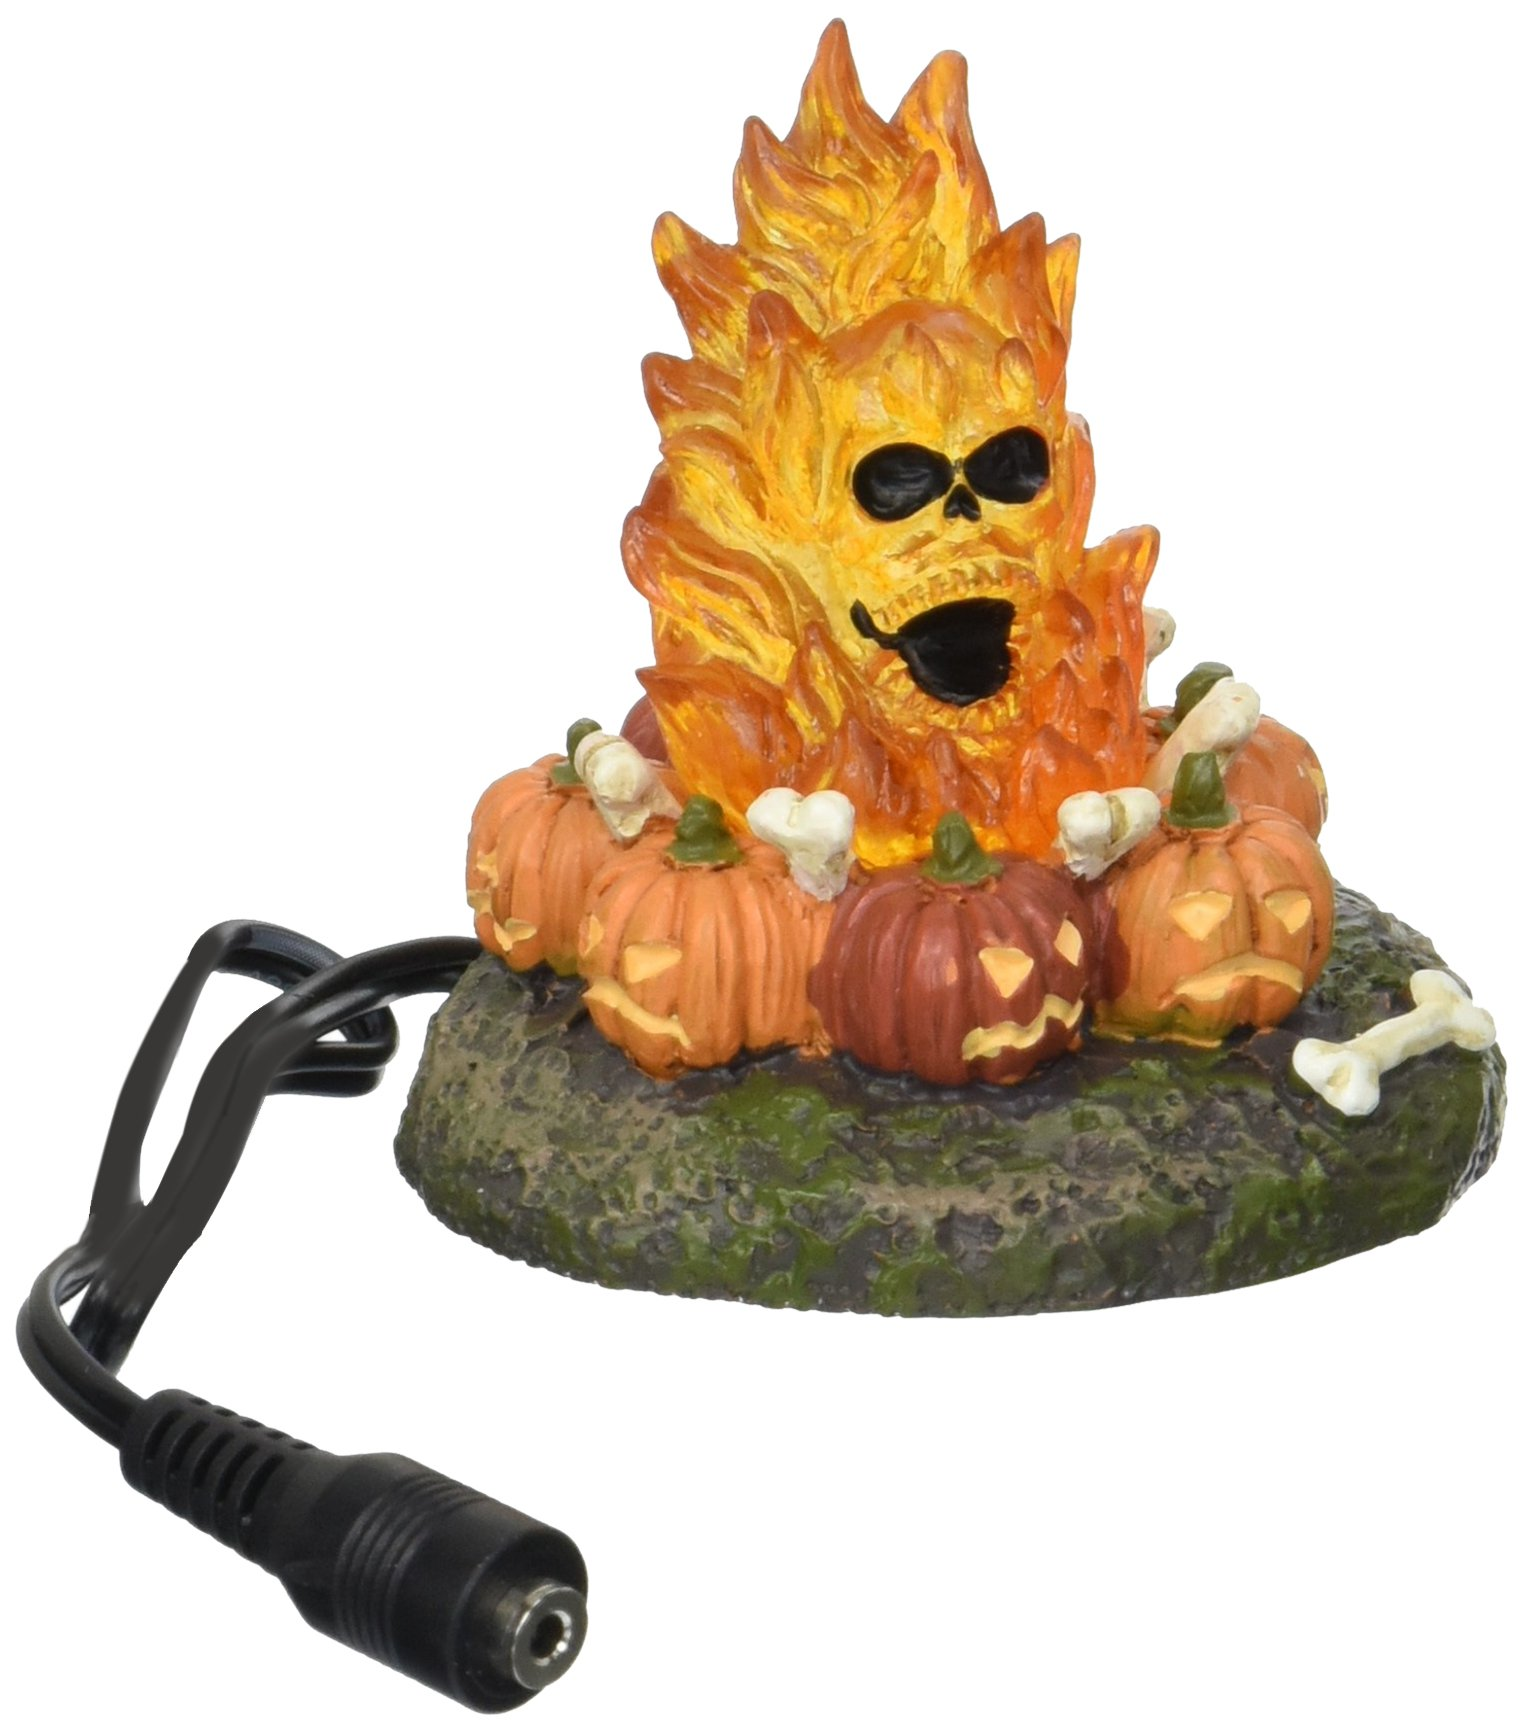 Department 56 Accessories for Villages Halloween Flaming Skull Bonefire Figurine